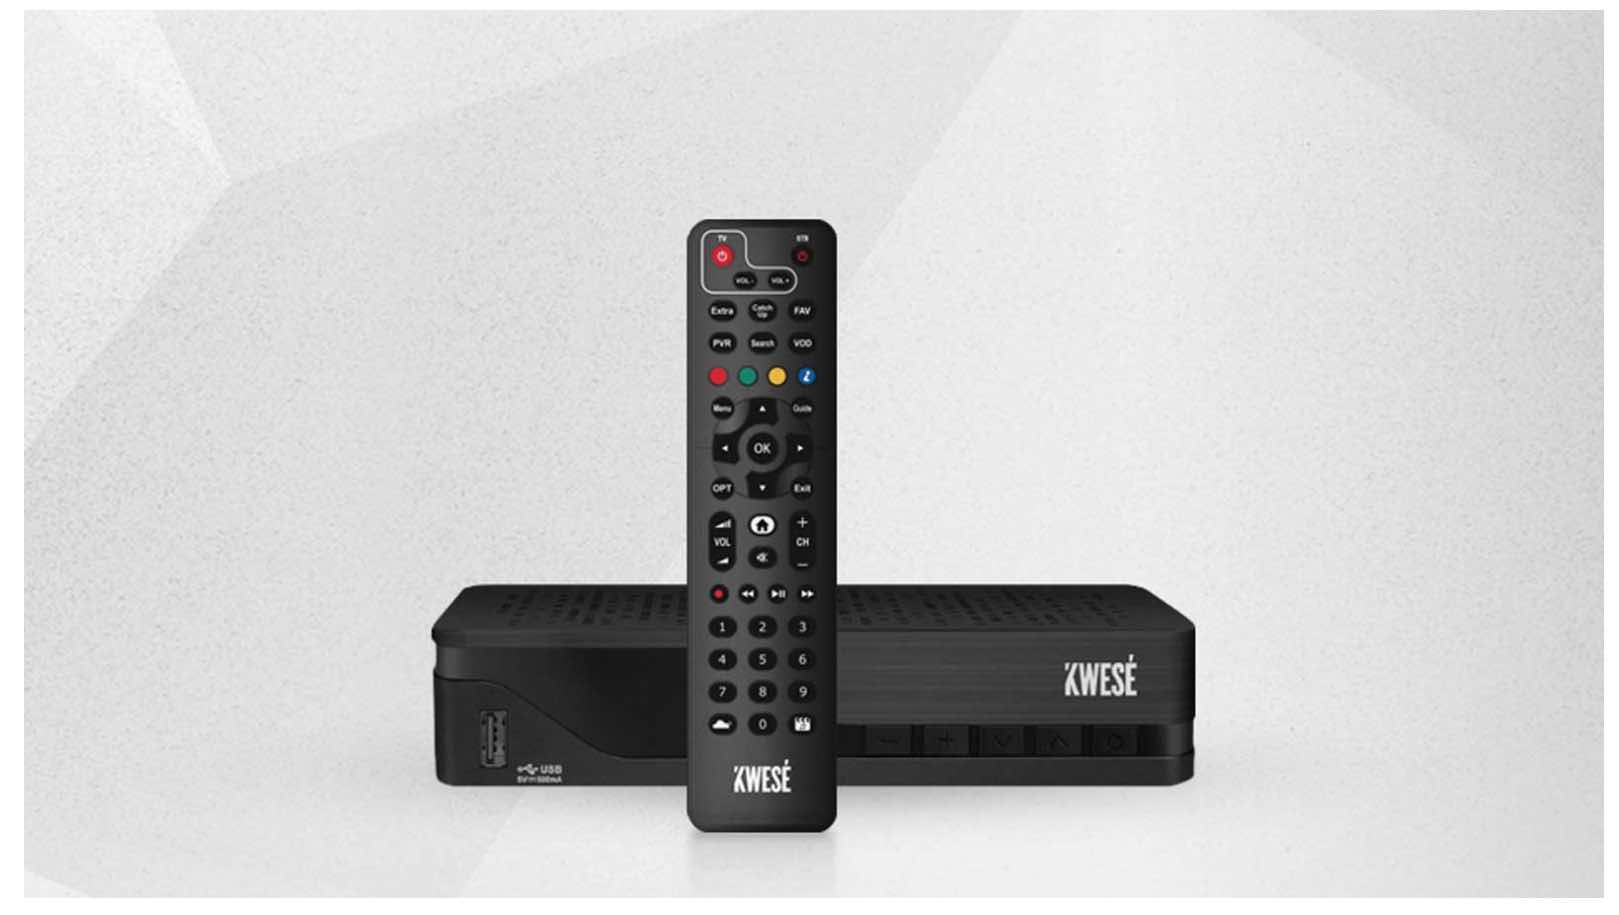 Kwesé Tv unveils 'pay-as-you-watch' TV bouquet in Kenya